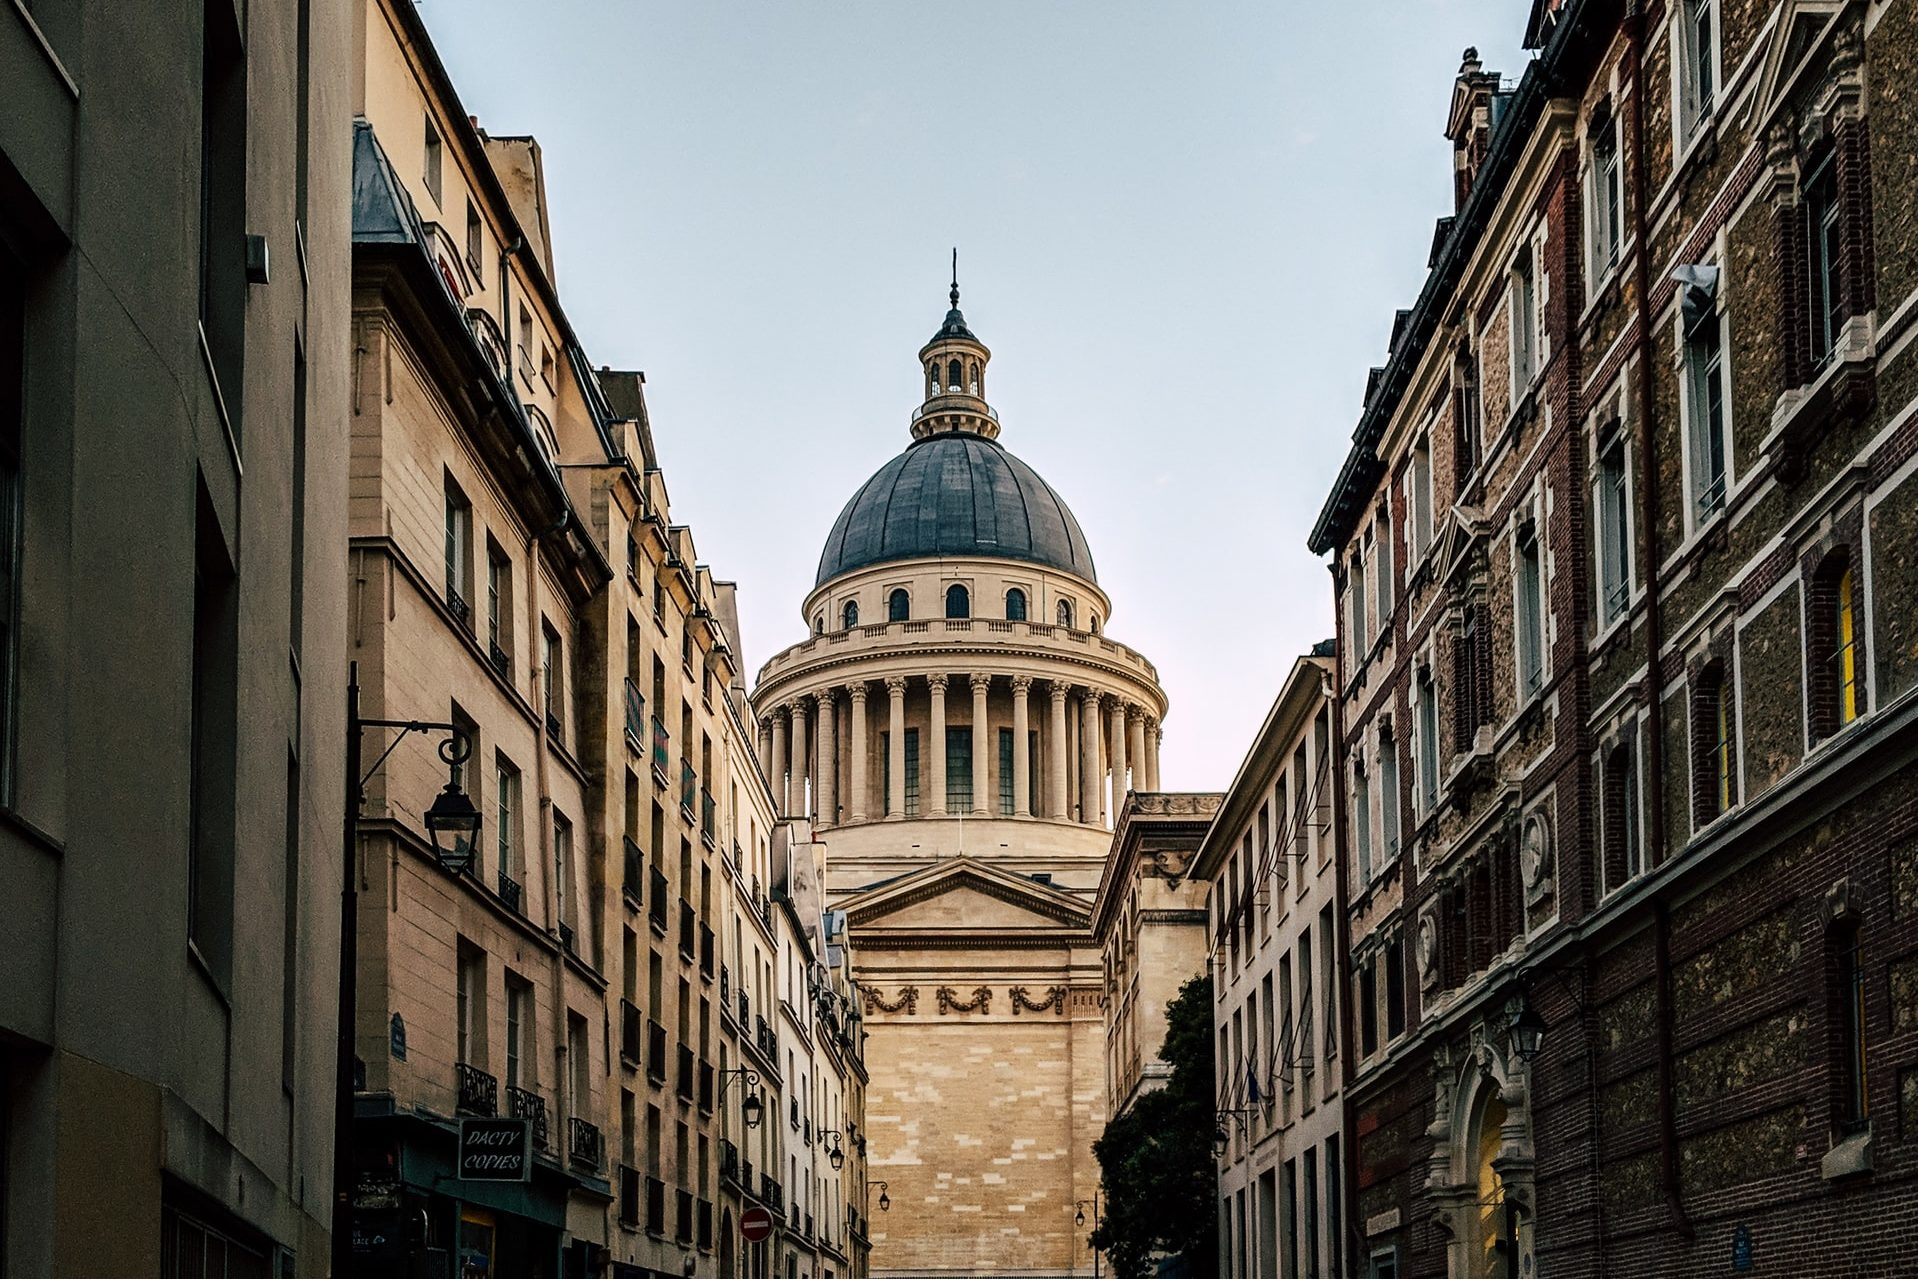 View of the Pantheon in Paris from a side street